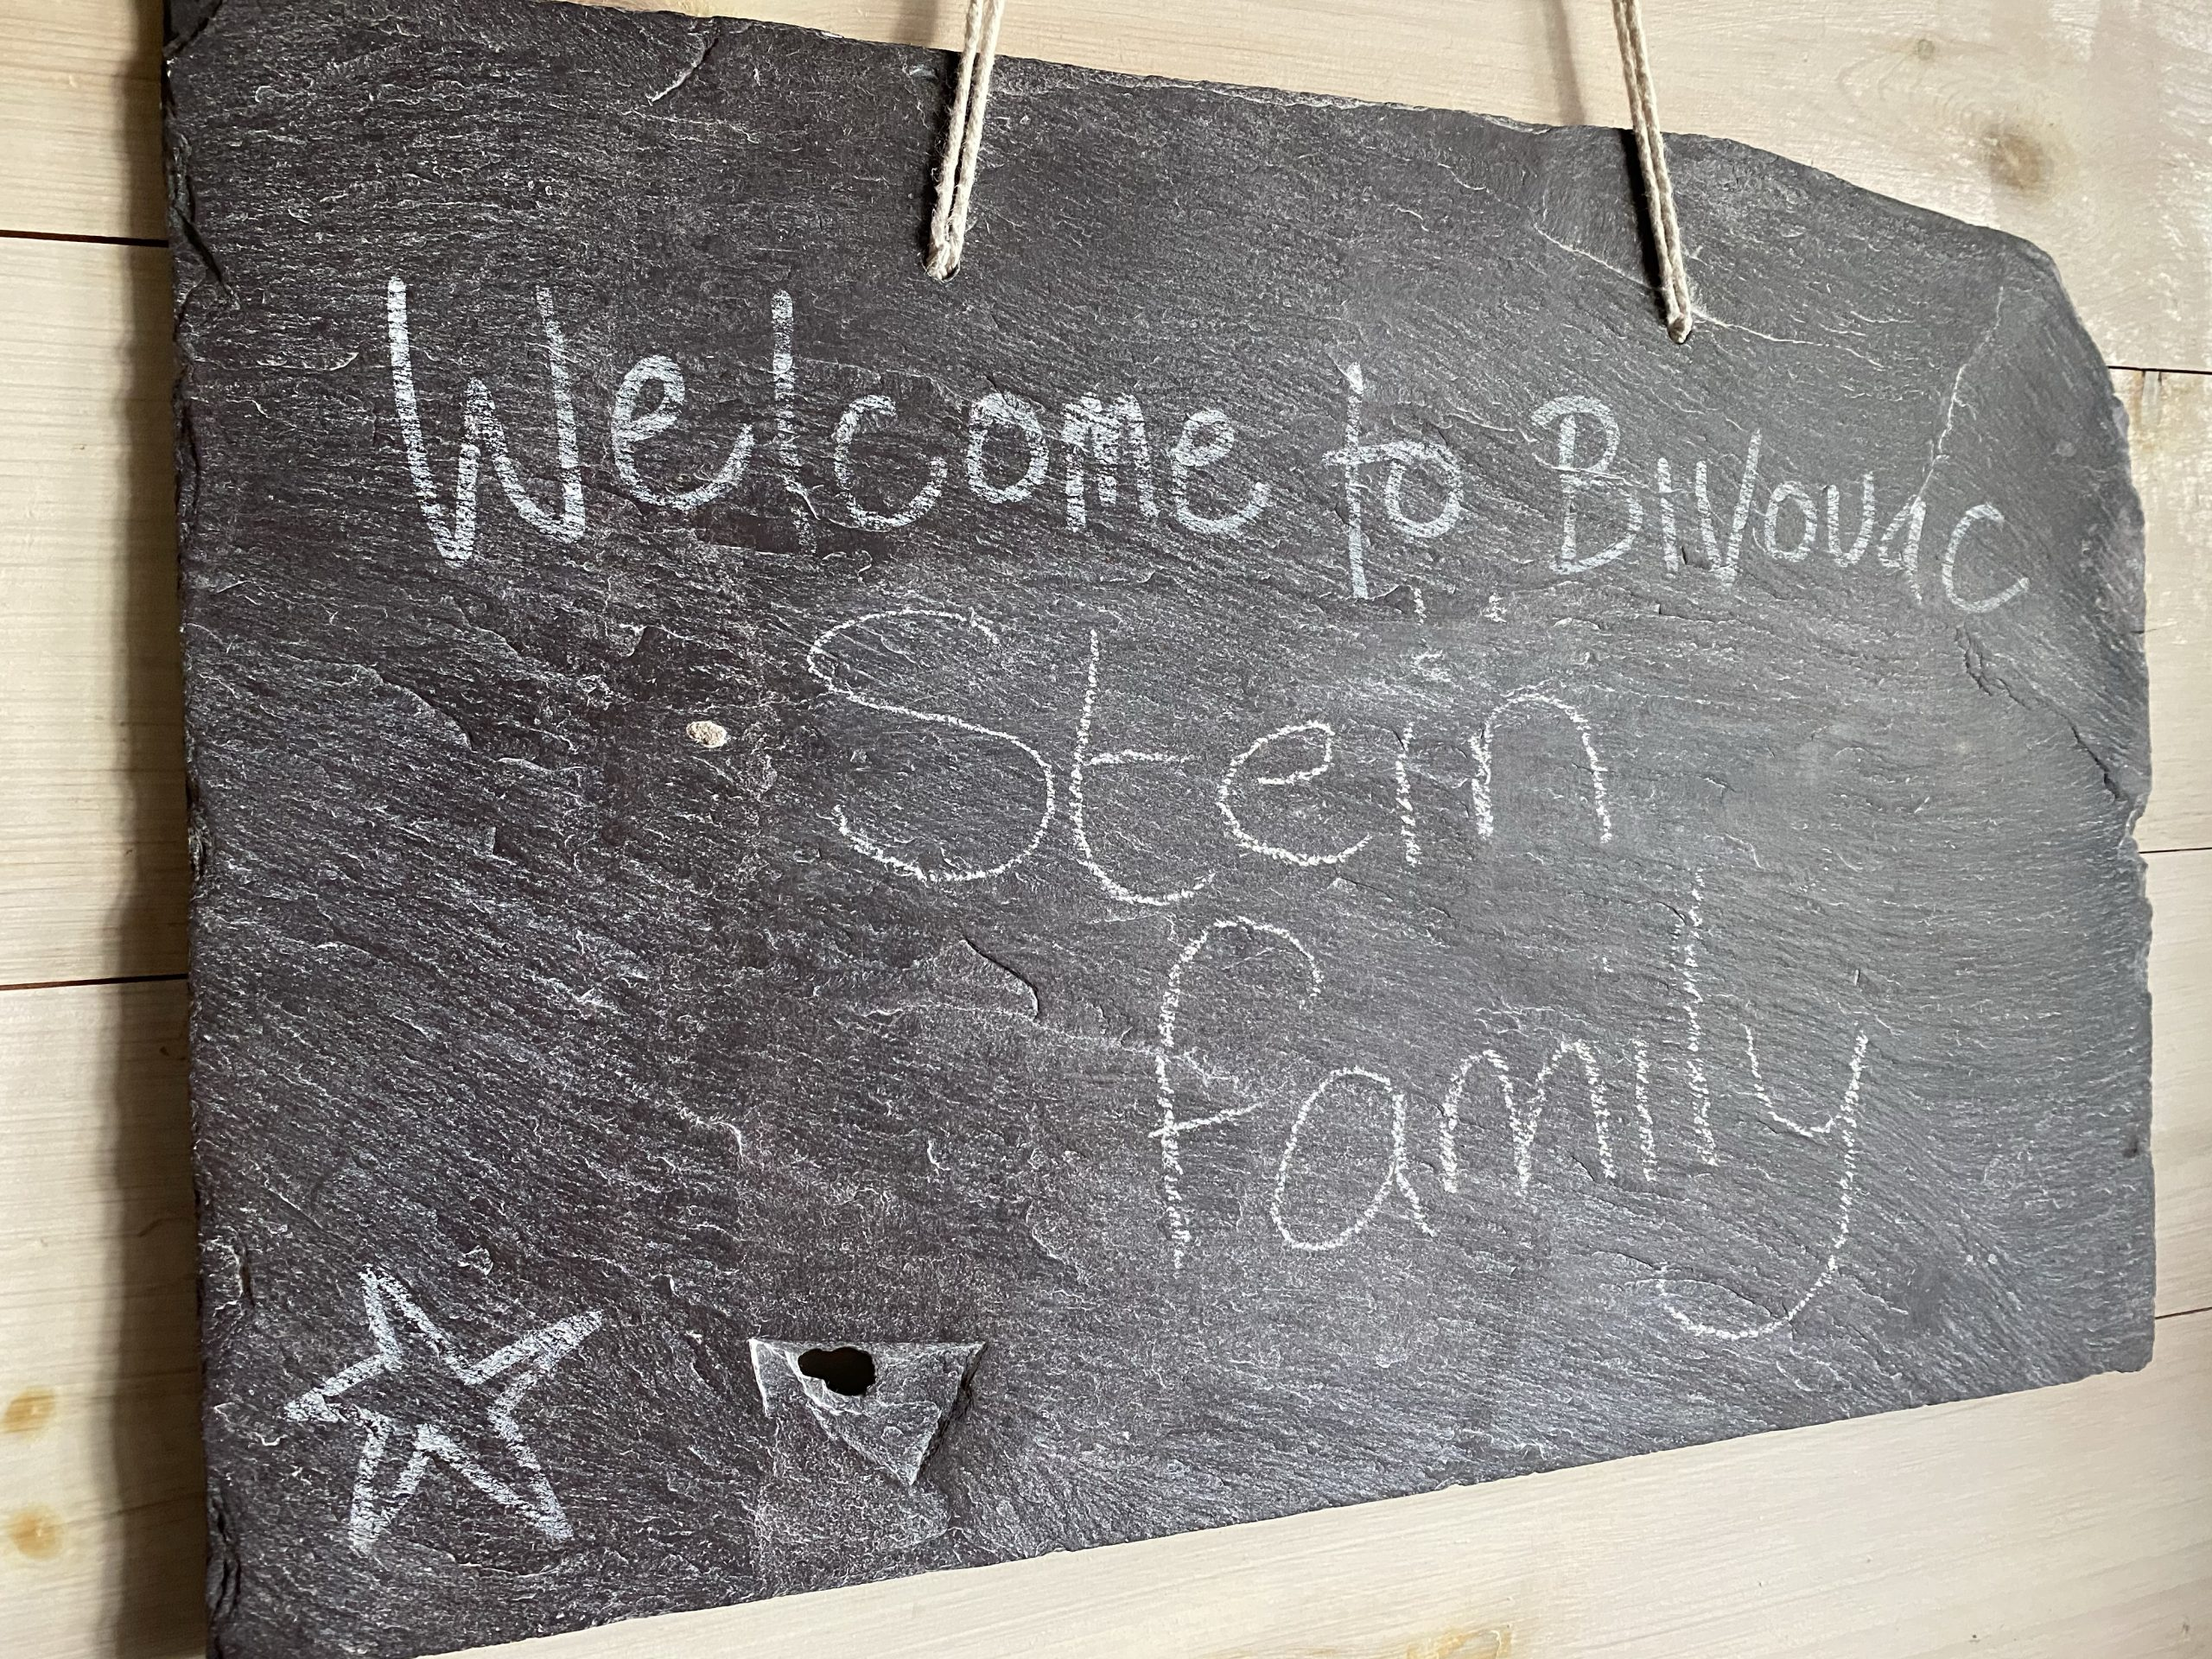 Swinton Bivouac tree lodge welcome sign